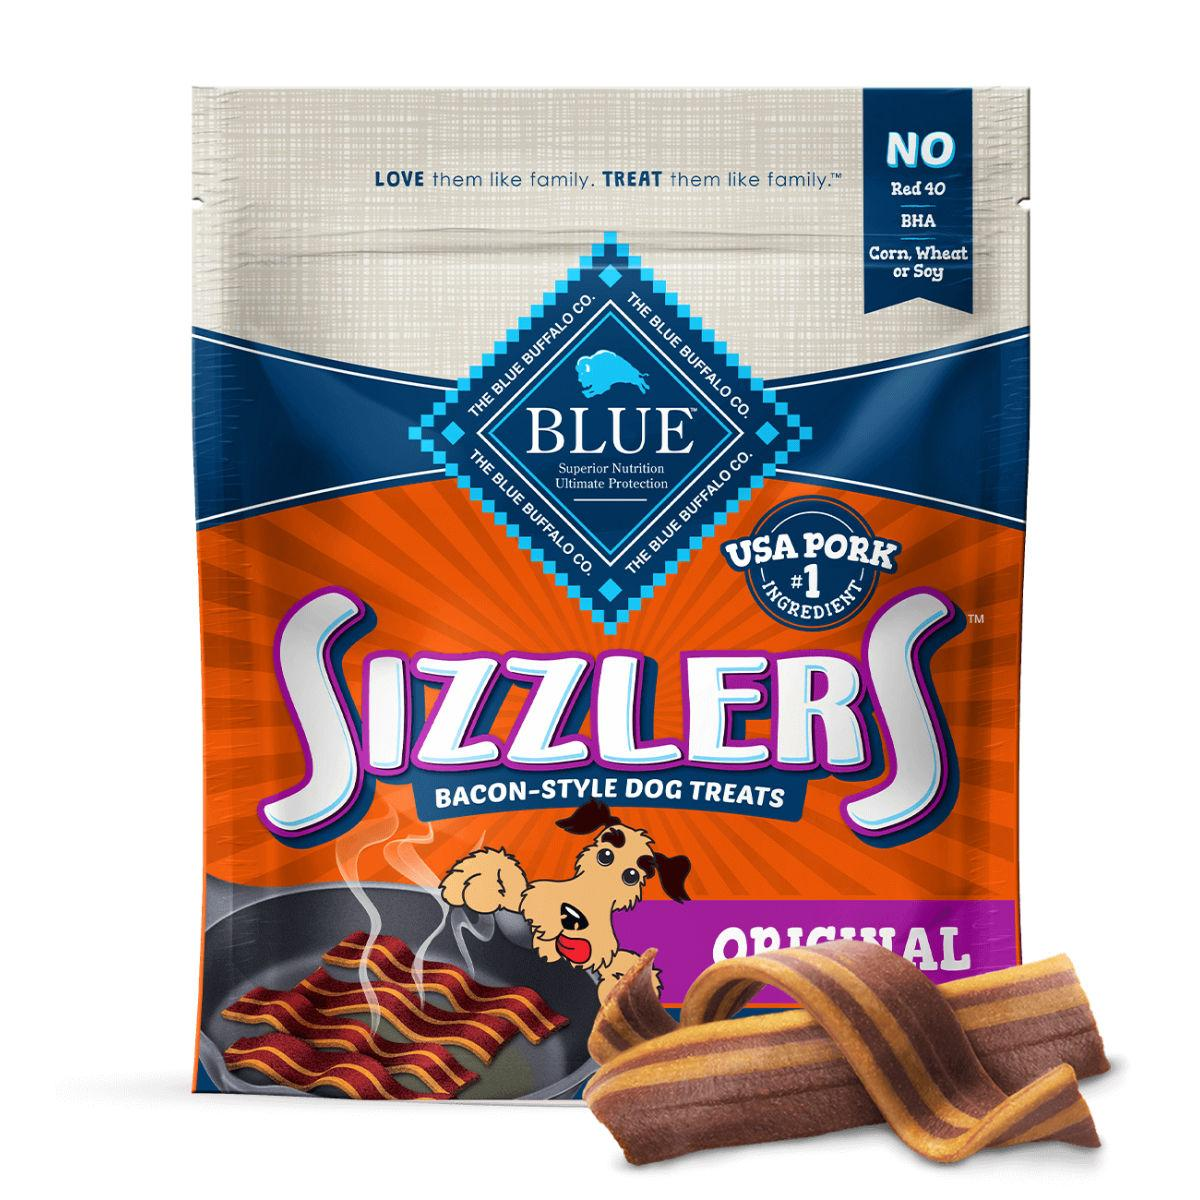 Blue Buffalo Sizzlers Dog Treat - Original Bacon Style